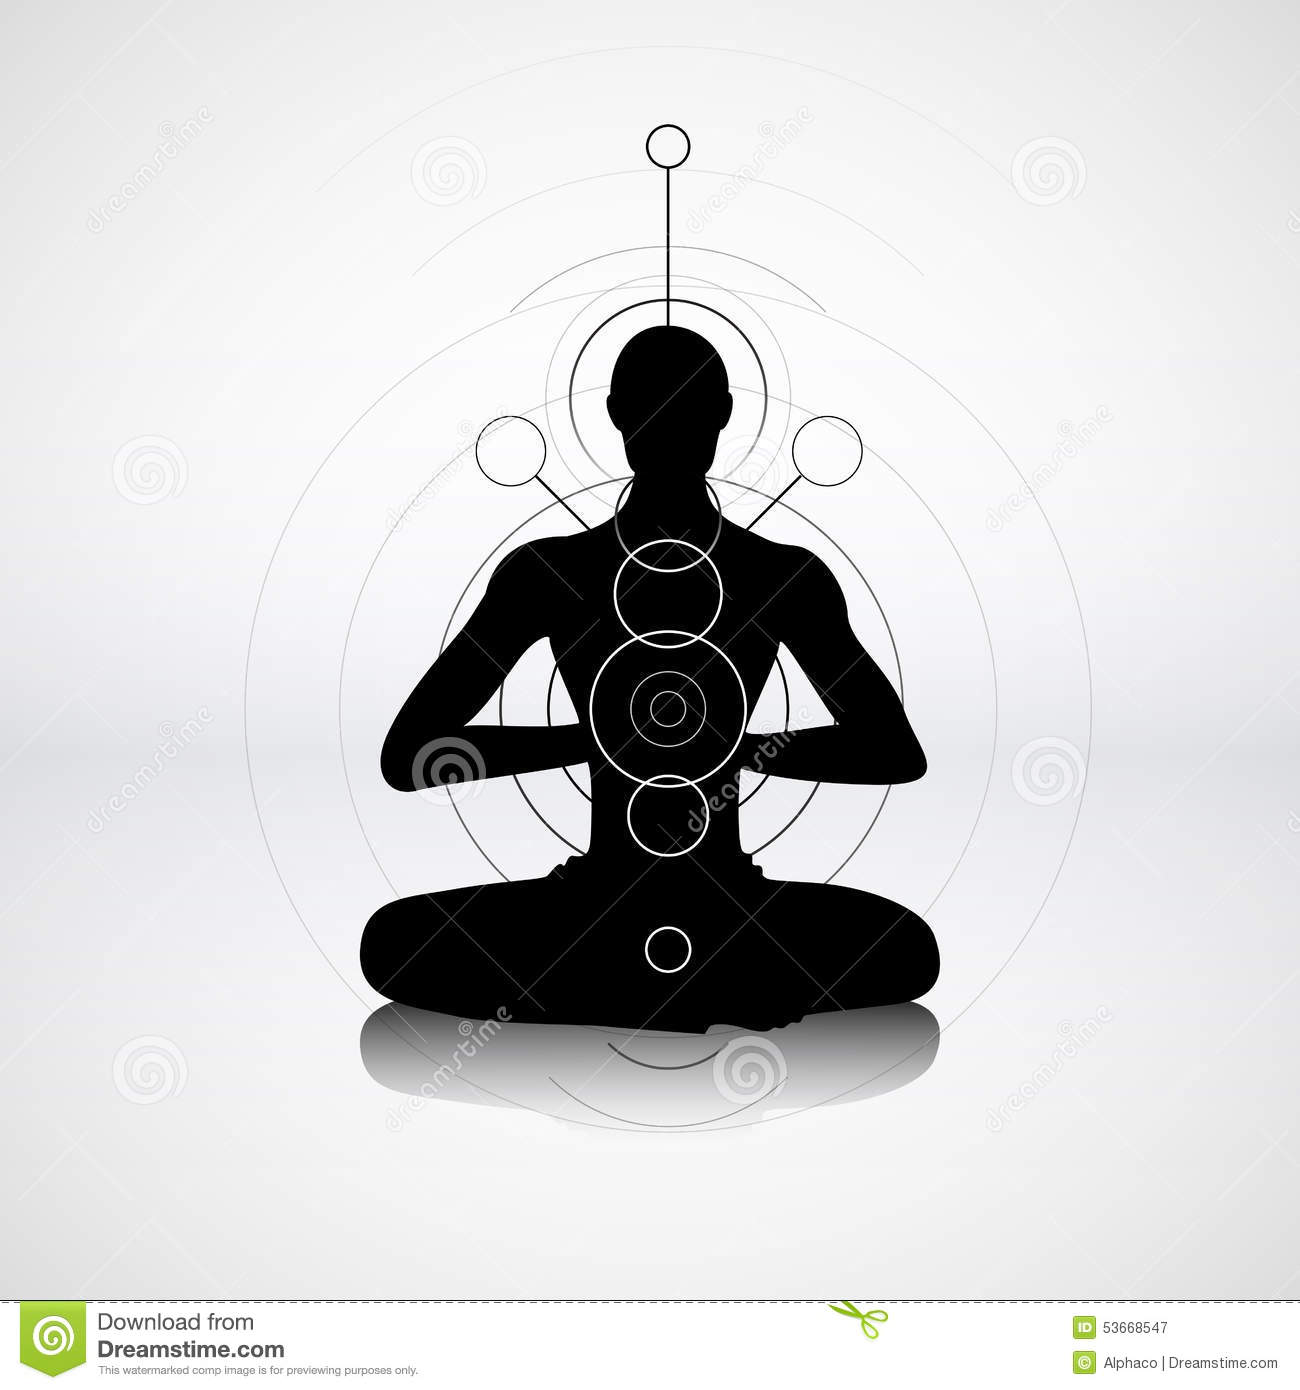 Male Silhouette In Yoga Pose Cartoon Vector